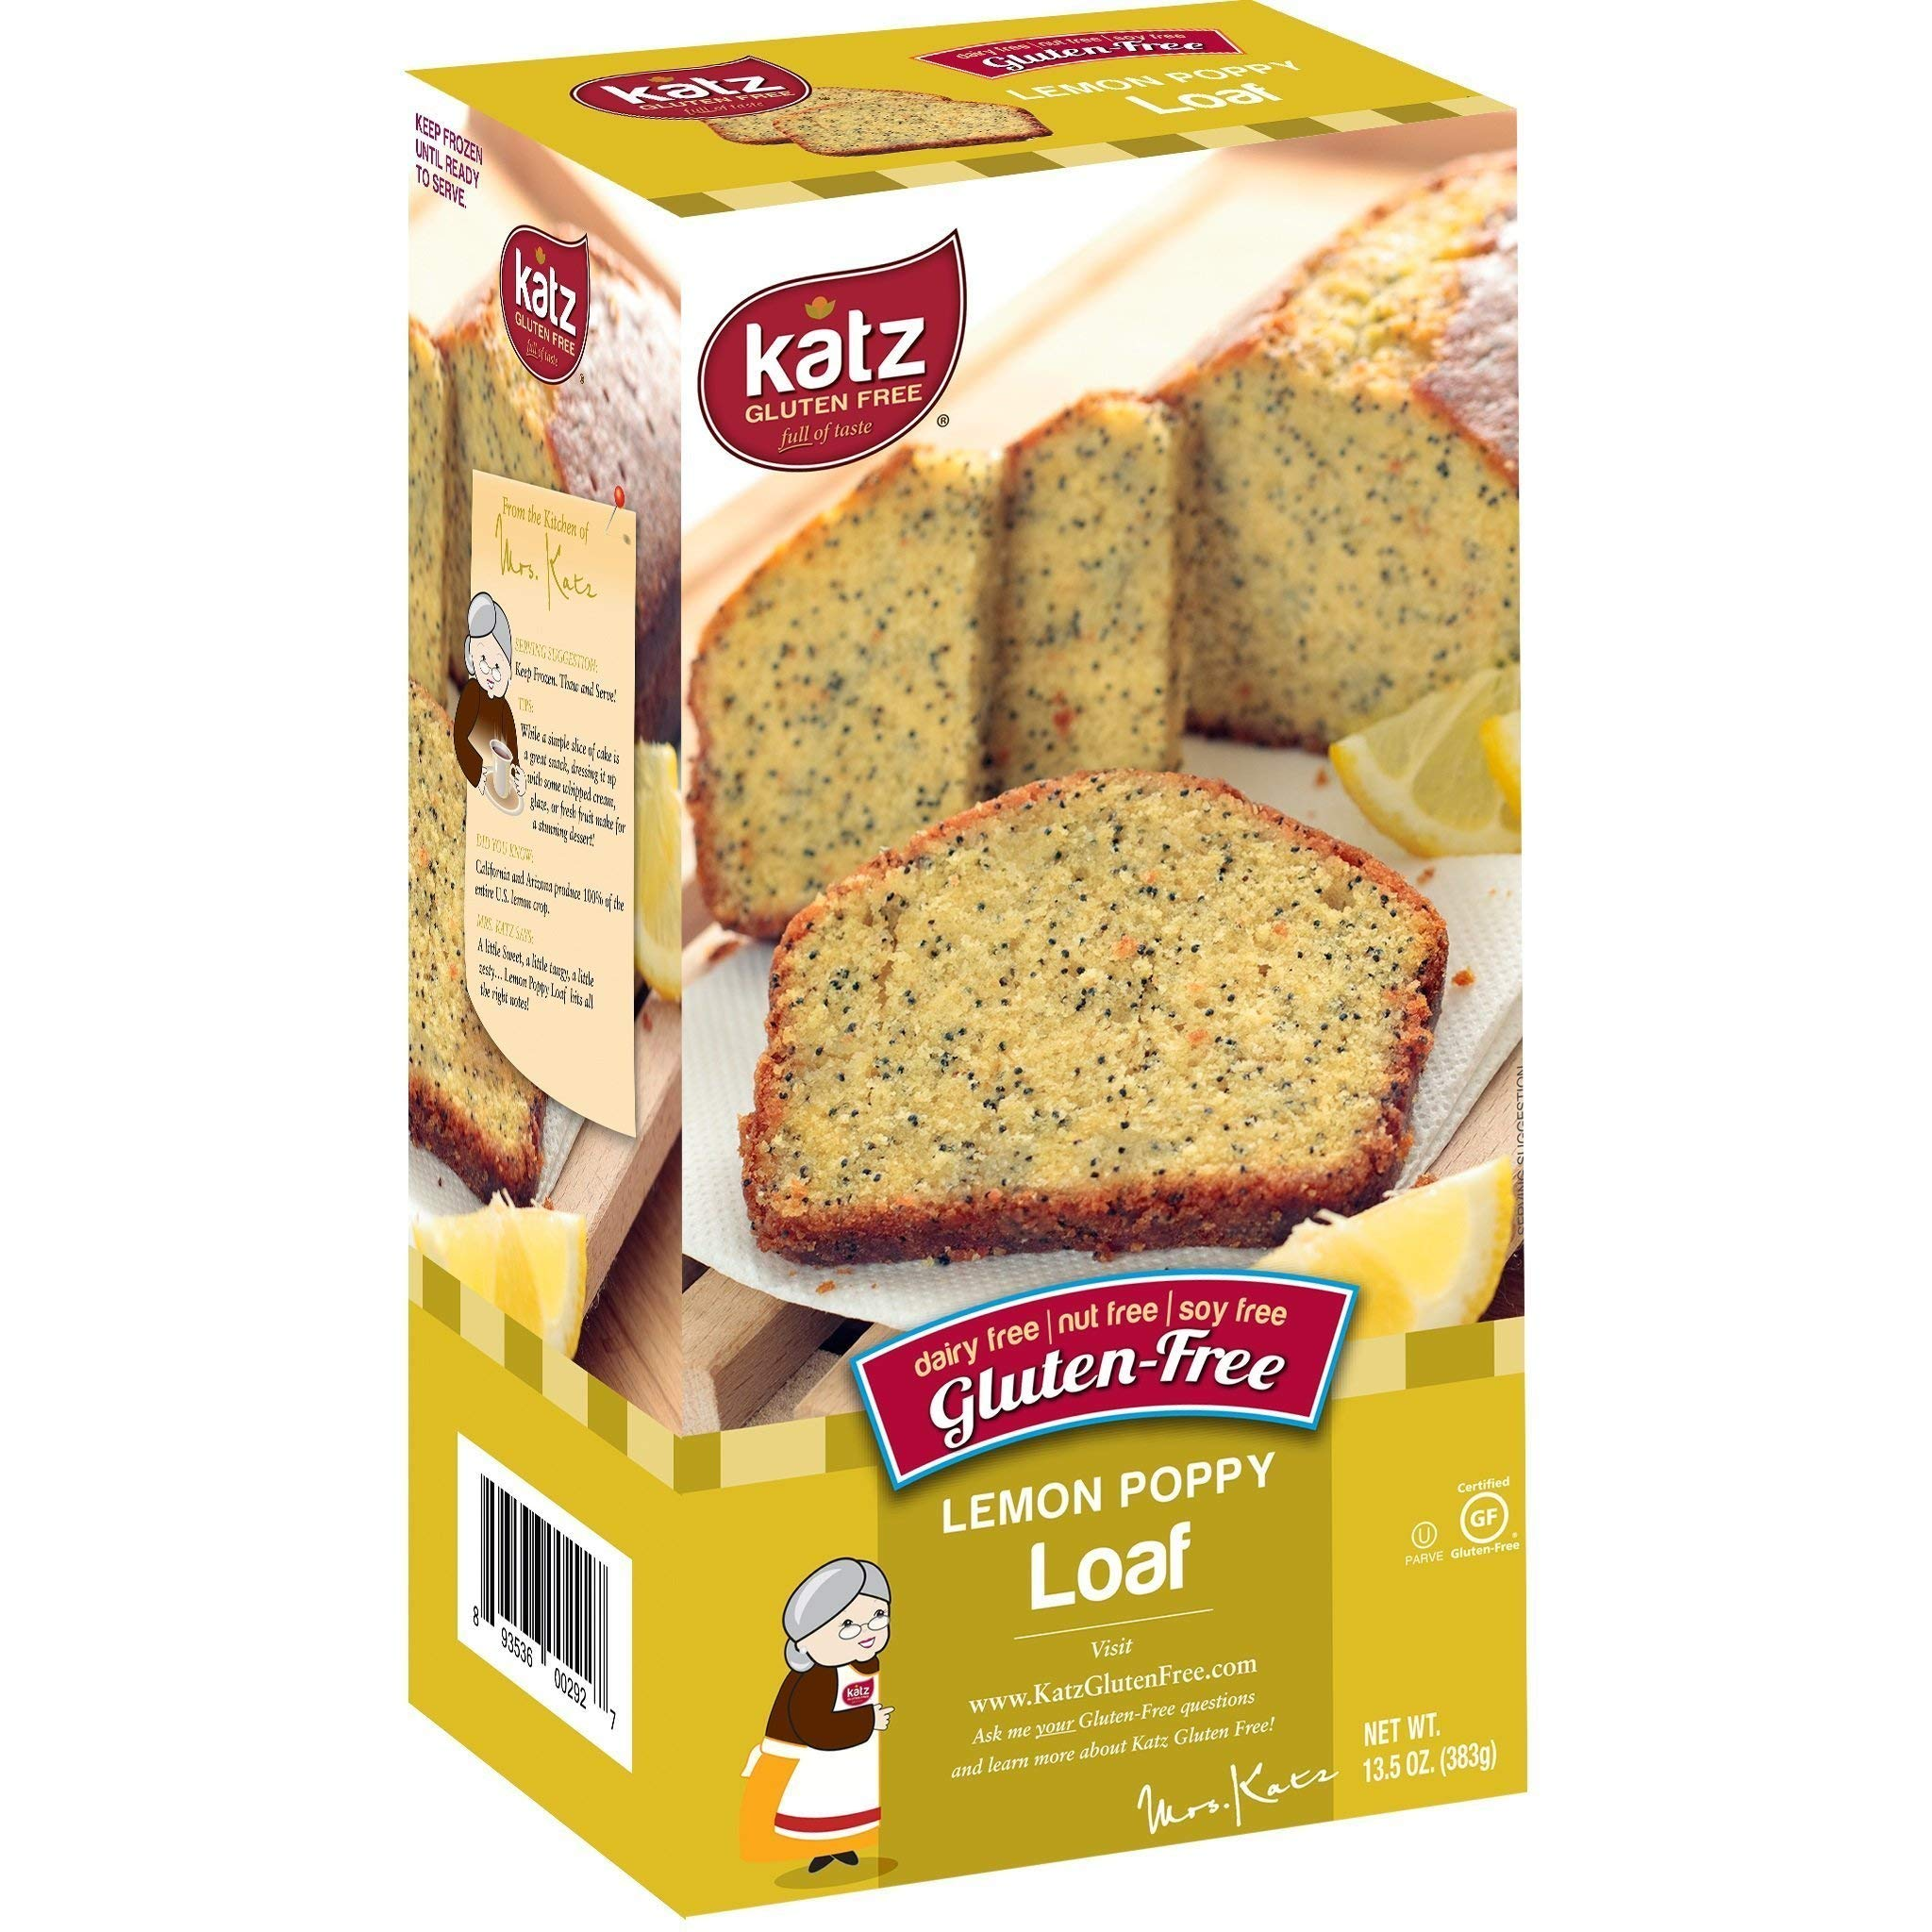 Katz Gluten Free Lemon Poppy Loaf | Dairy, Nut, Soy and Gluten Free | Kosher (3 Packs of 1 Loaf, 13.5 Ounce Each) by Katz Gluten Free